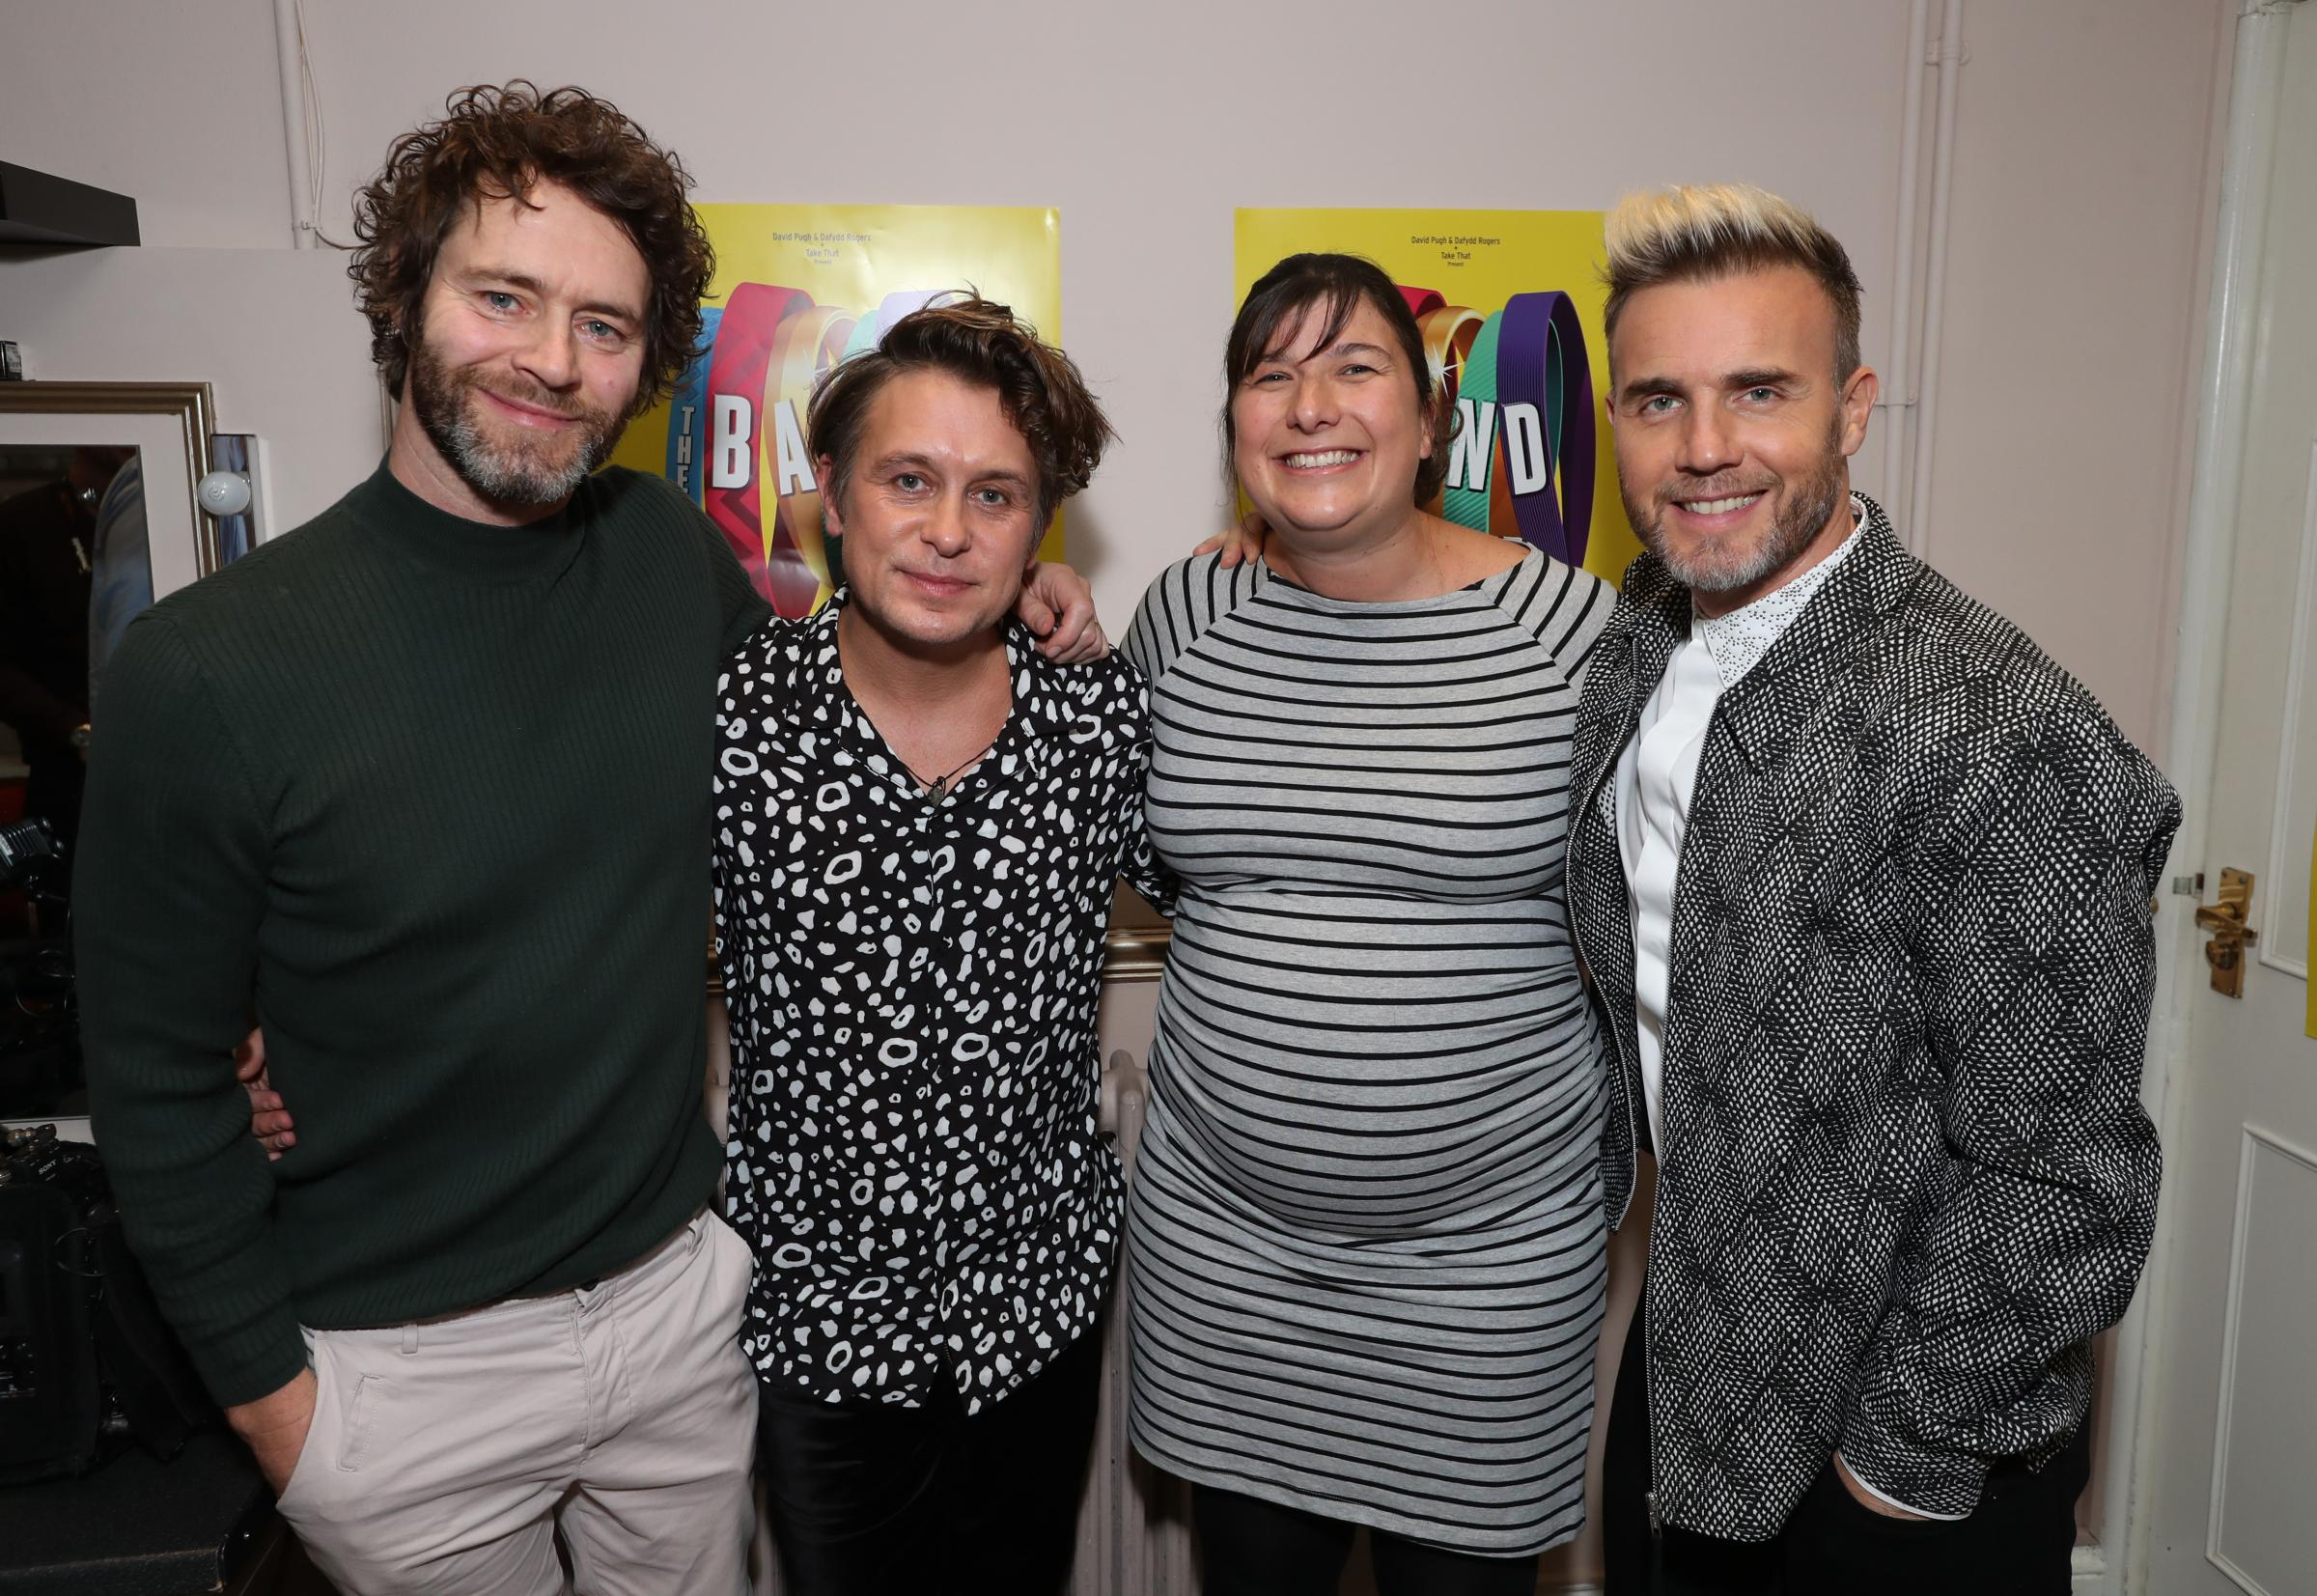 Howard Donald, Mark Owen and Gary Barlow of Take That picture at the Mayflower Theatre on the opening night of The Band - NO SYNDICATION PHOTO ONLY TO BE USED IN THE DAILY ECHO, SOUTHAMPTON CITIZEN AND BOURNEMOUTH ECHO NO PHOTO SALES